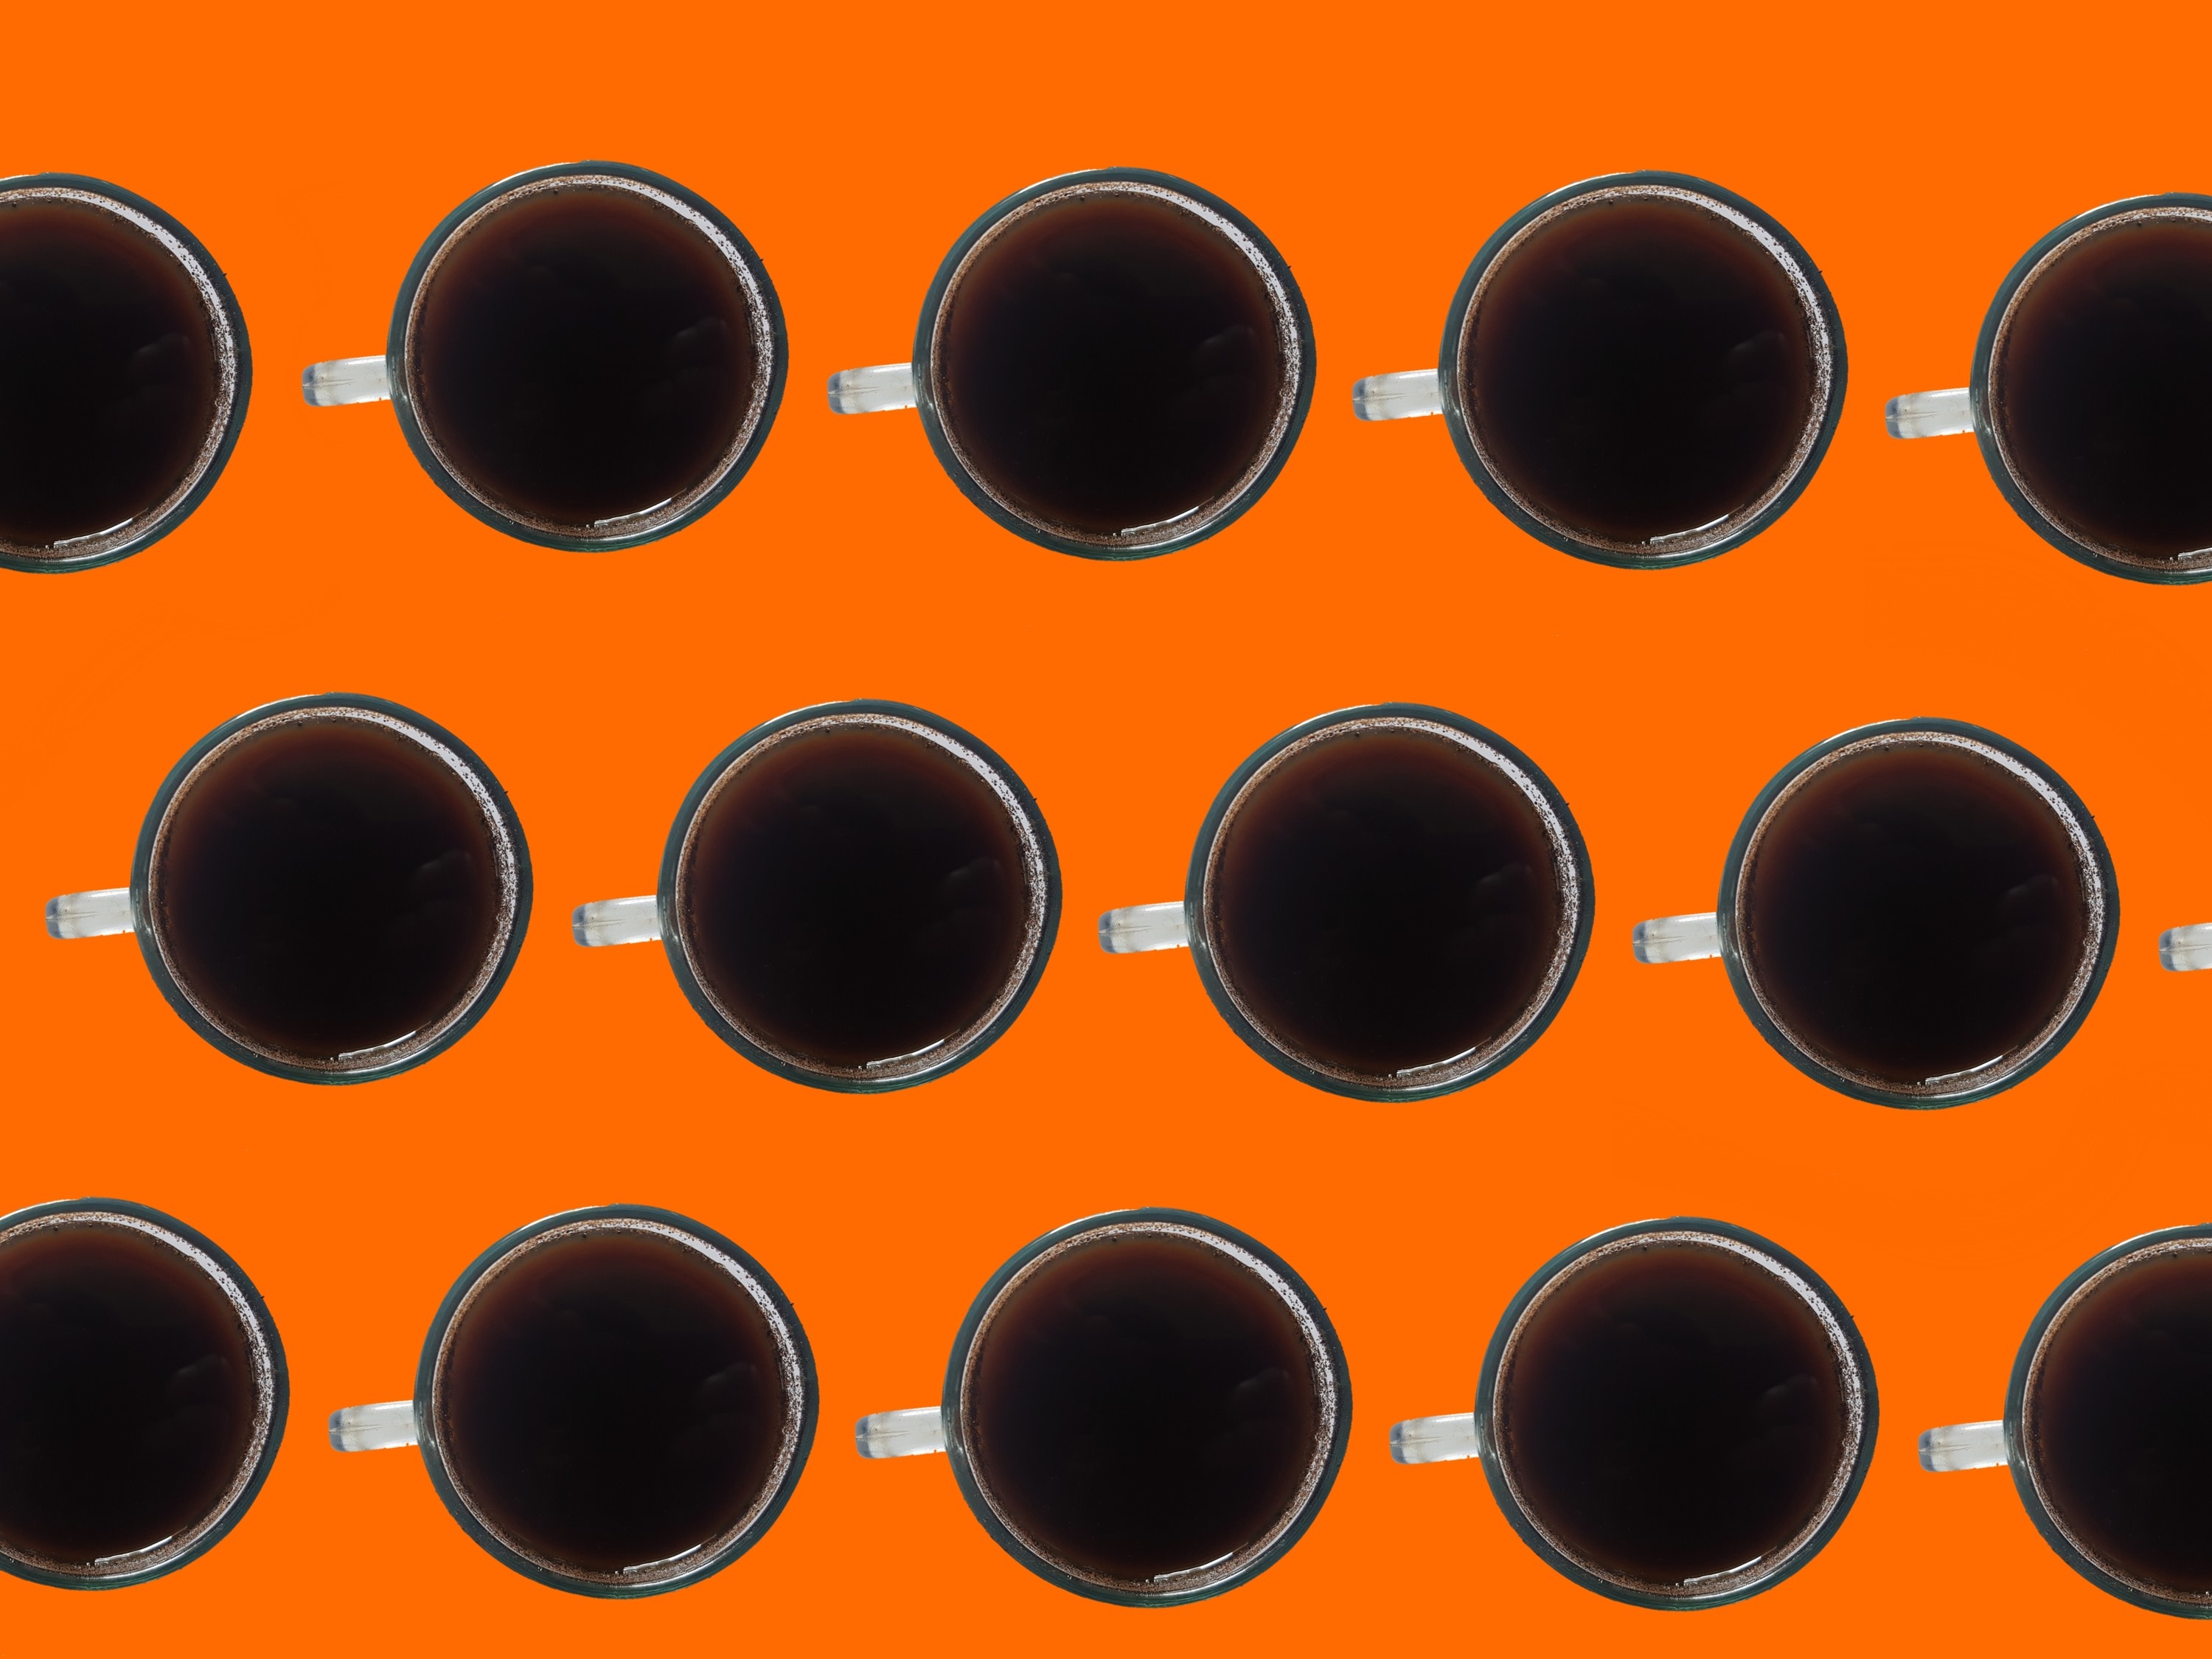 Three rows of espresso shot against a bright yellow background, captured from above.